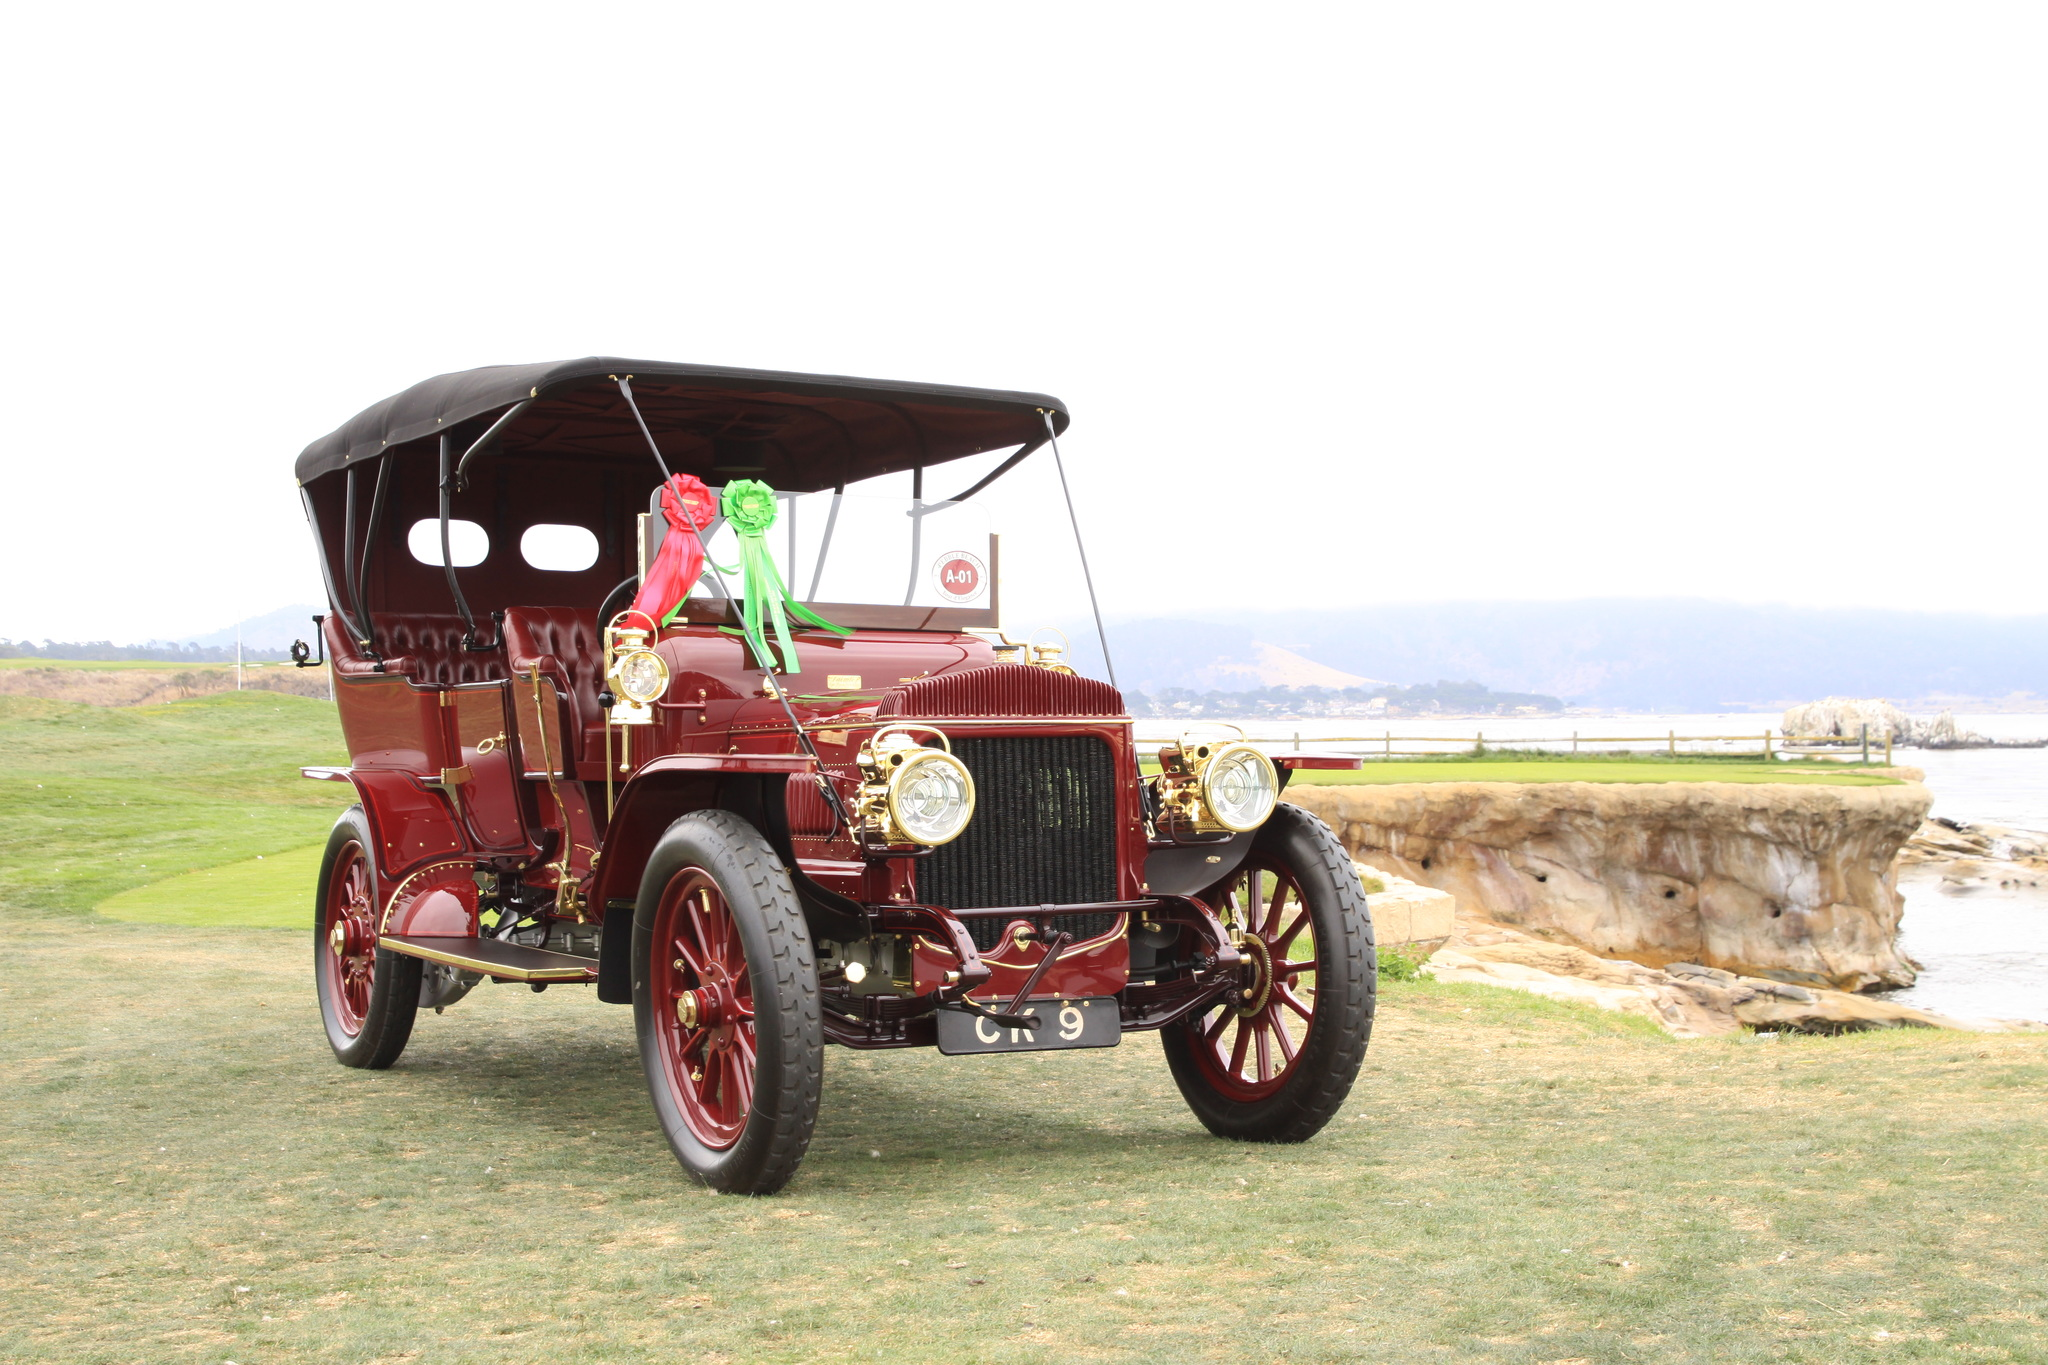 """1908 Daimler TC48 Roi des Belges.  This rare 48-hp Daimler has Roi des Belges or tulip phaeton coachwork, a style first seen in 1901 when King Leopold II of Belgium decided to buy a new car. The king visited Paris to discuss his idea with Ferdinand Charles of Rothschild et Fils, a coachbuilding firm belonging to the famous banking dynasty. To improve passenger comfort they decided on richly upholstered tub-chairs then in fashion. With these handbeaten, tulip-shaped seats and a graceful, pinched-in waist, the """"Roi des Belges"""" body style caused a sensation when it was unveiled in 1902, and remained in fashion for several years."""